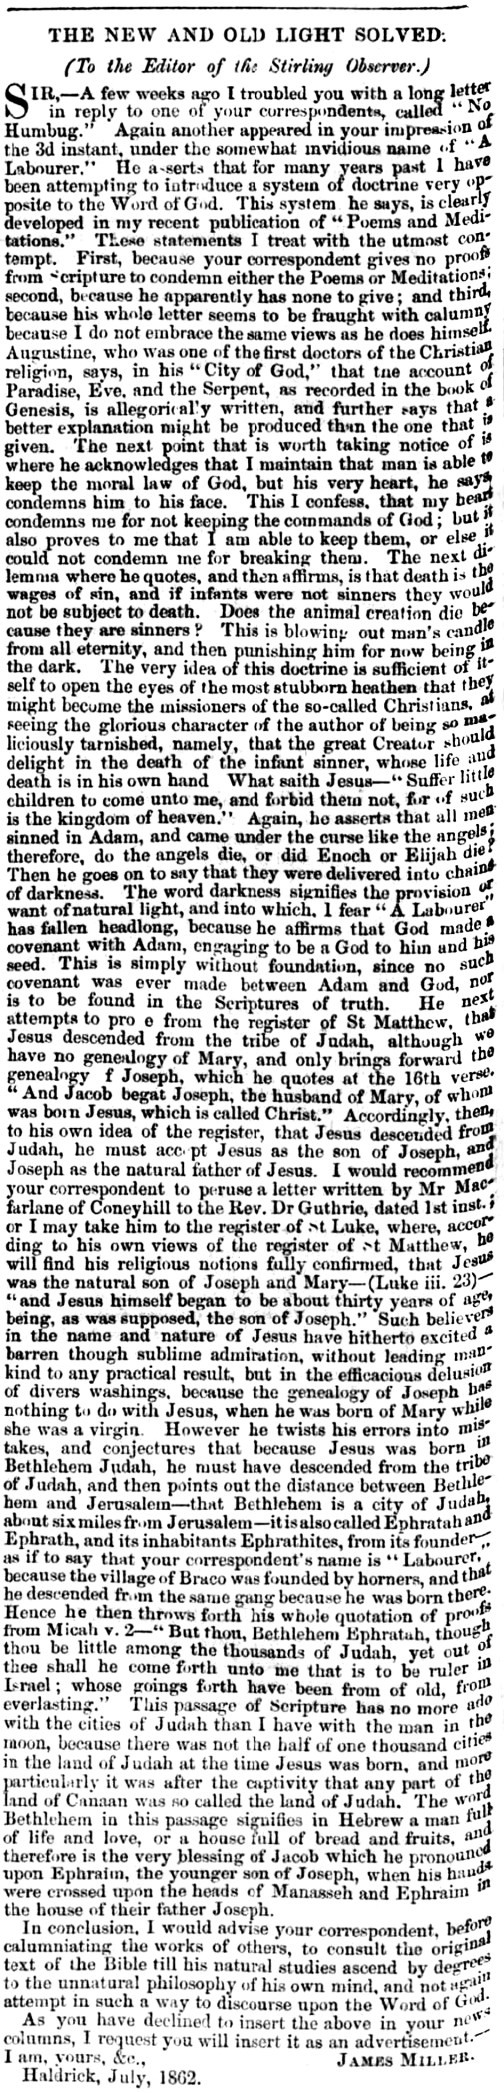 June 1862 'The new and old light solved' - James Miller of Haldrick